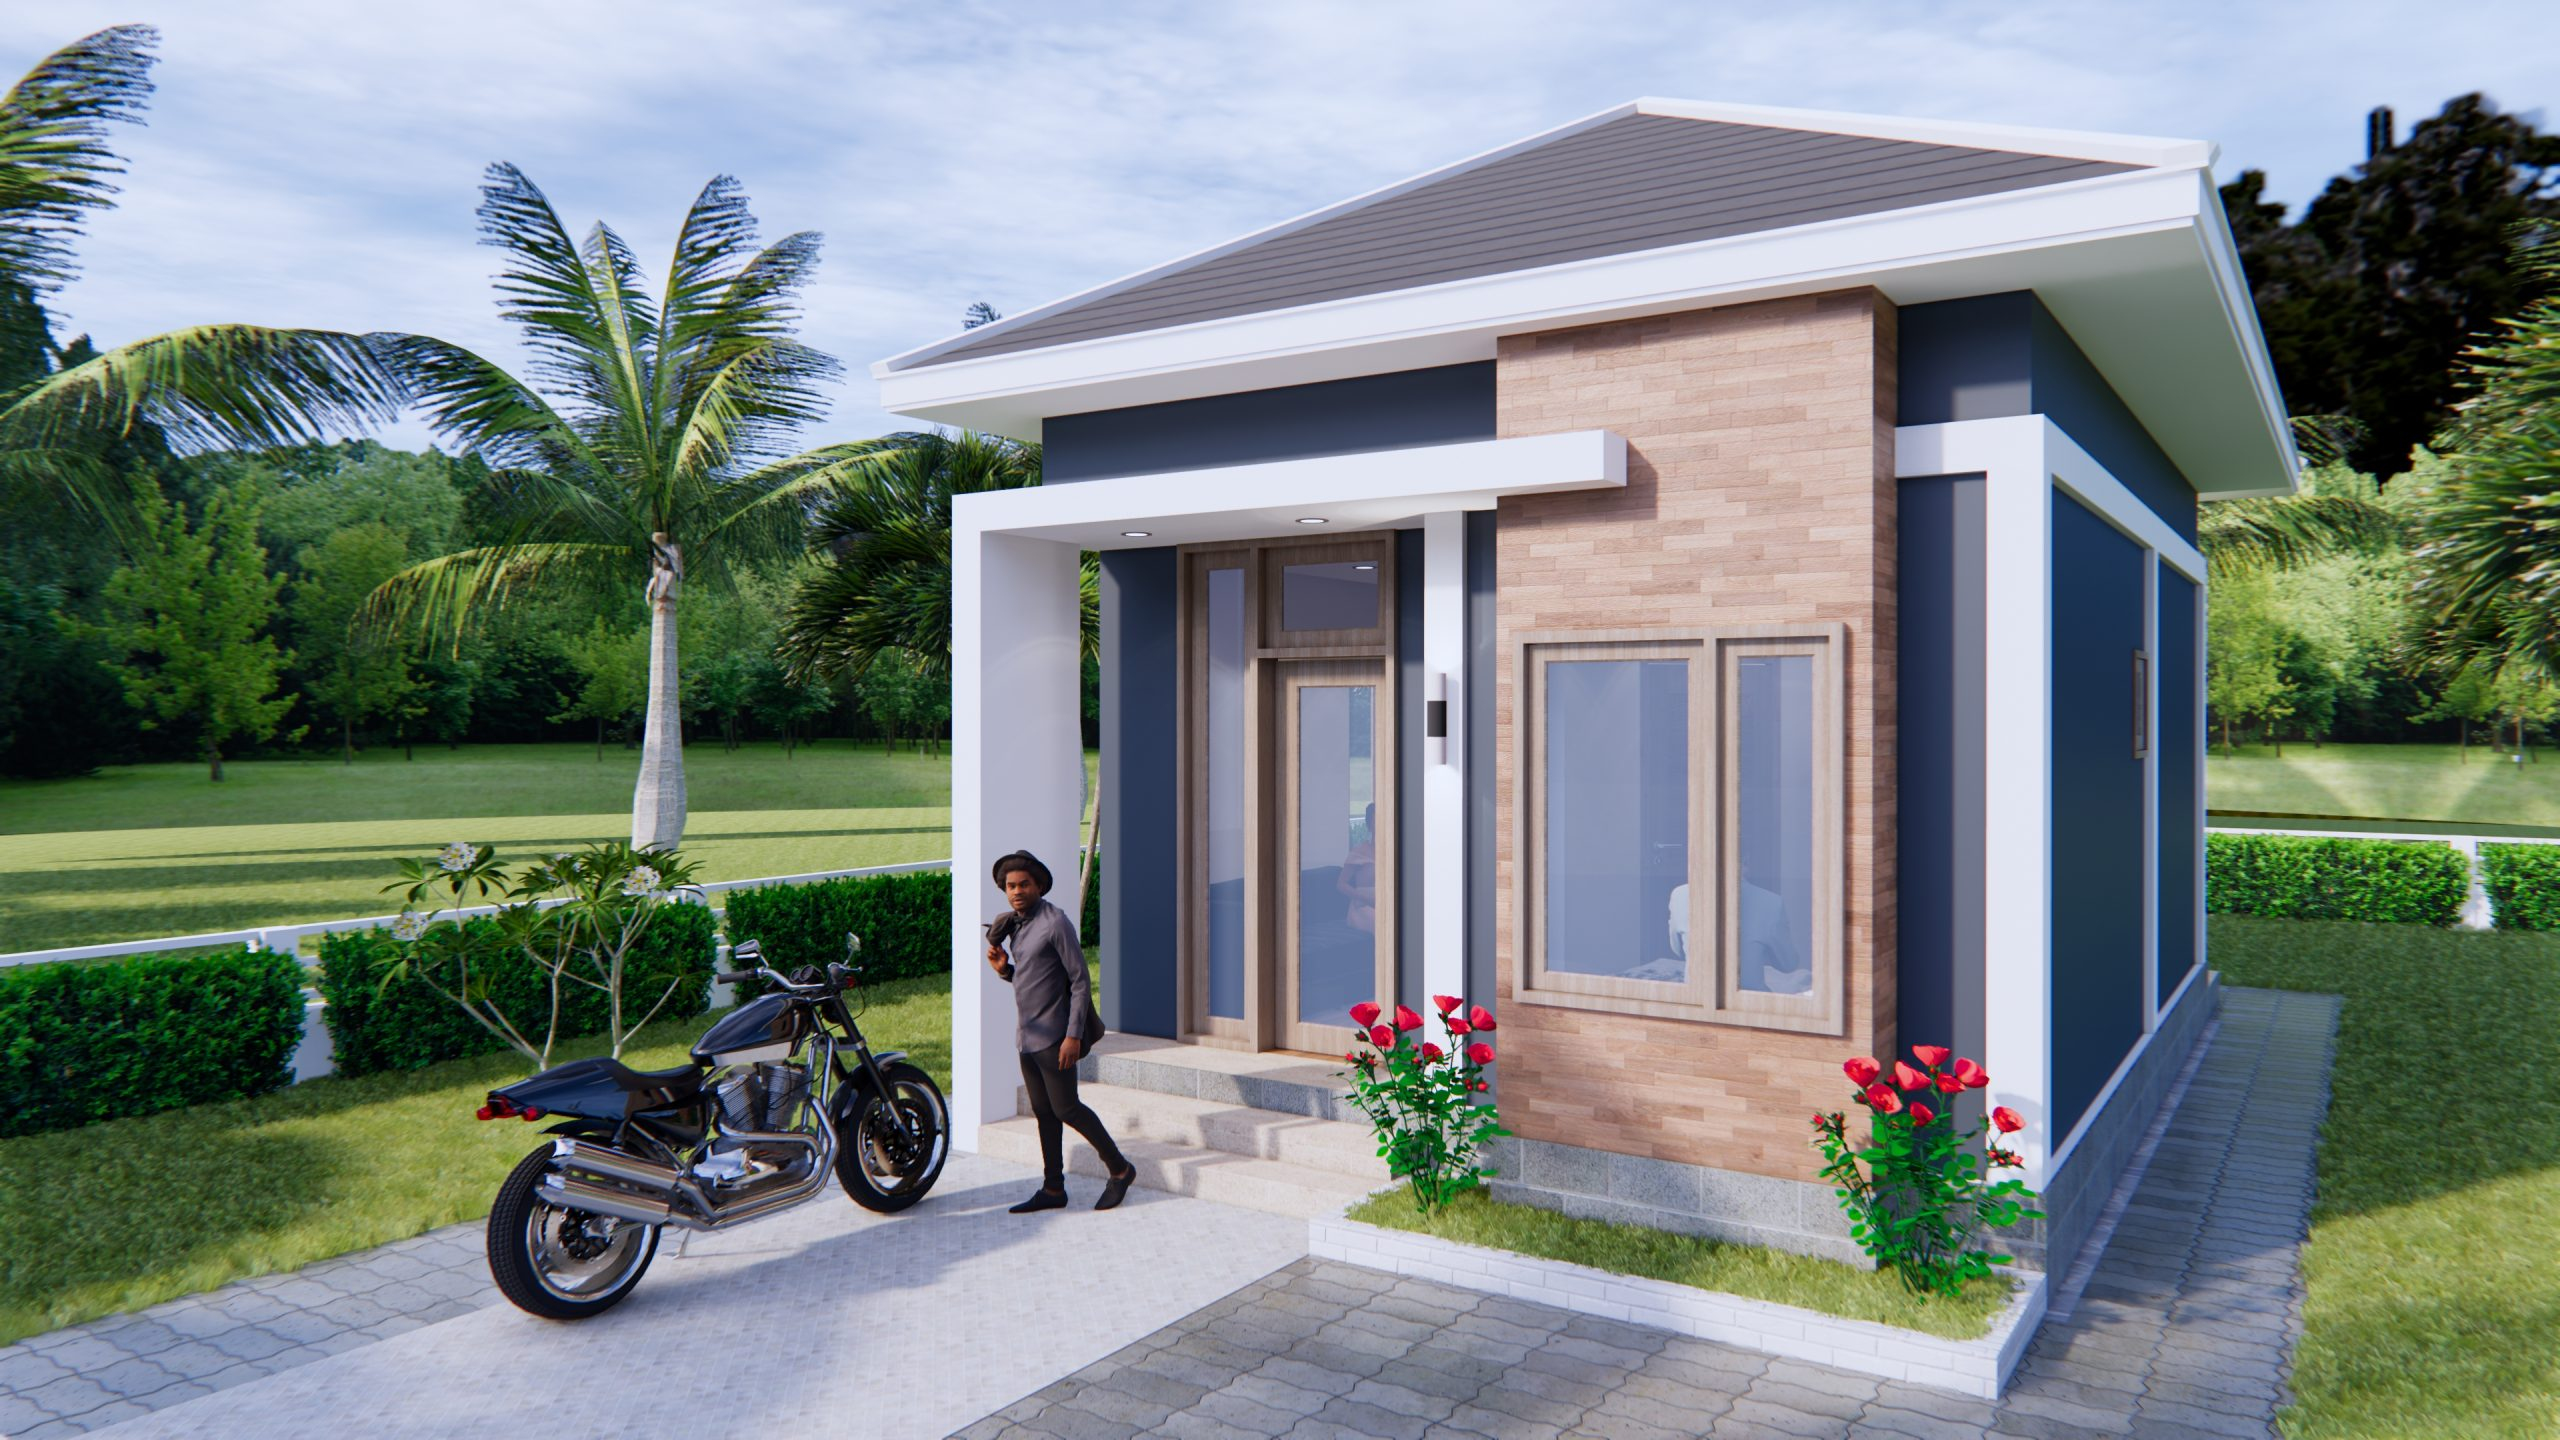 New Small House Designs 5x7 Meters 16x23 Feet 2